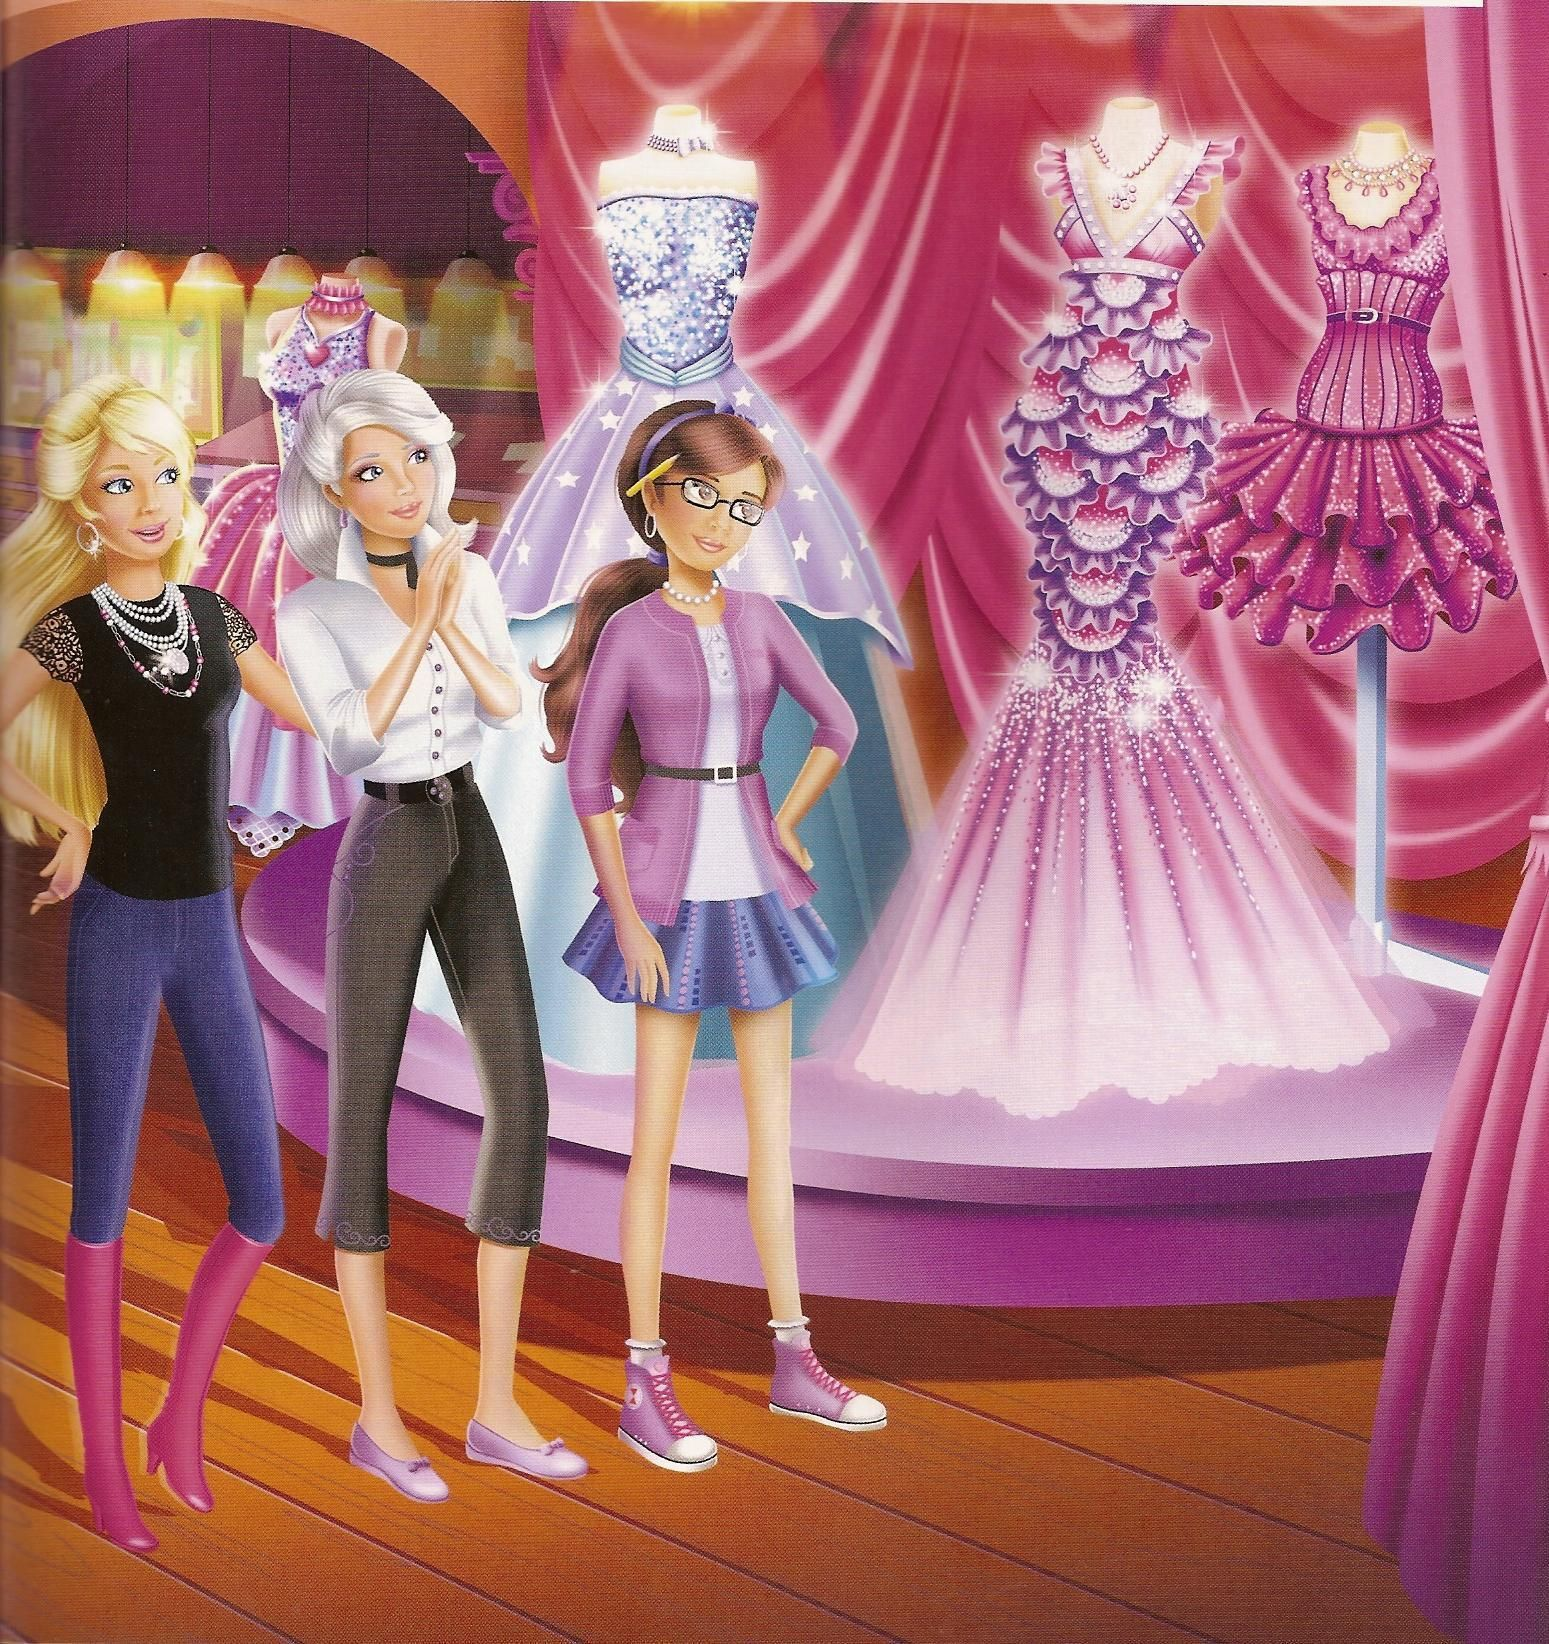 Barbie A Fashion Fairytale Gallery Barbie Movies Wiki Fandom In 2020 Barbie Images Barbie Cartoon Barbie Princess